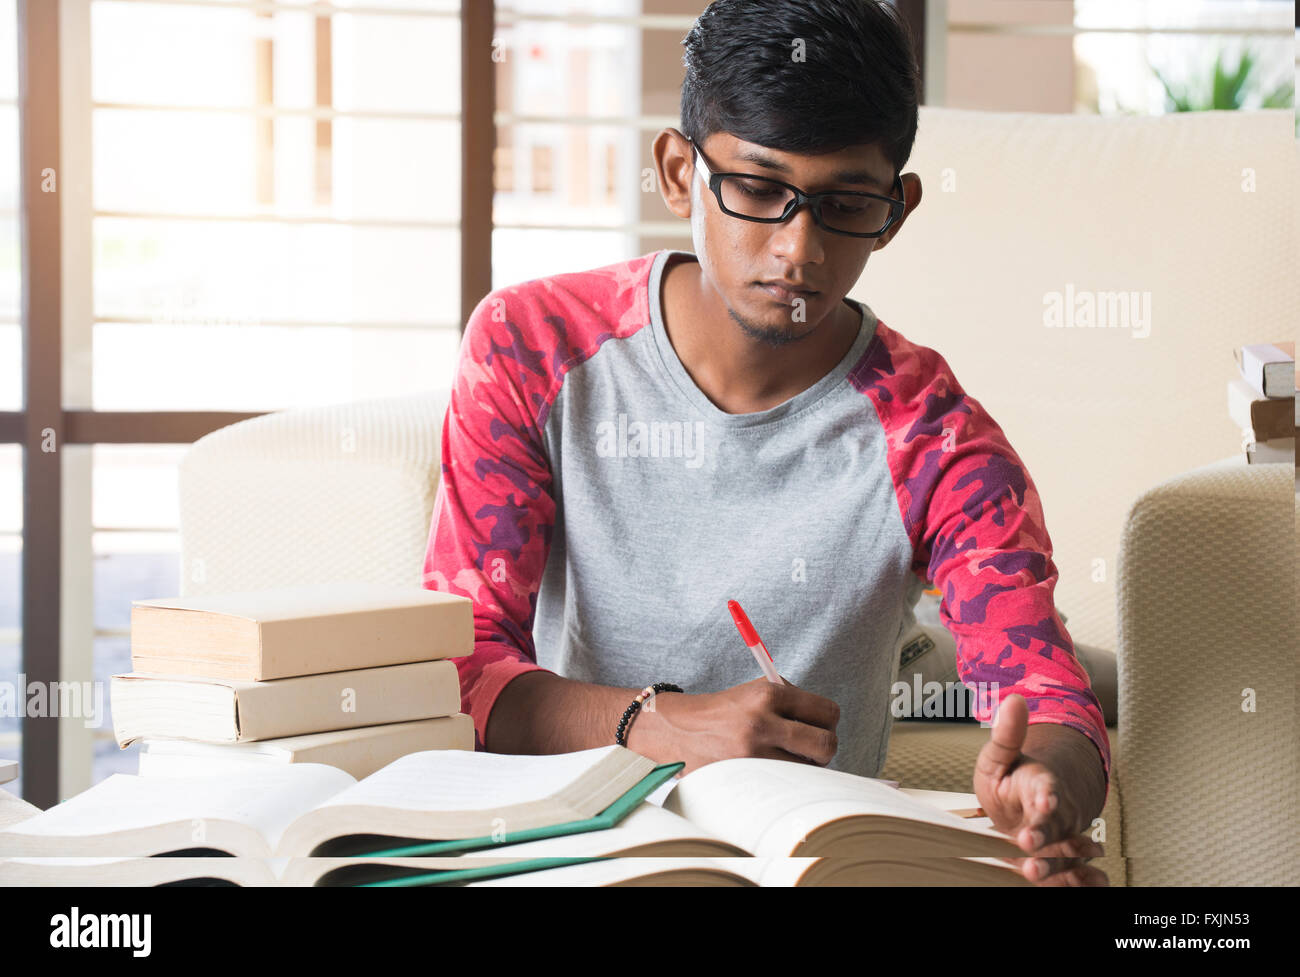 Where to find and buy college homework